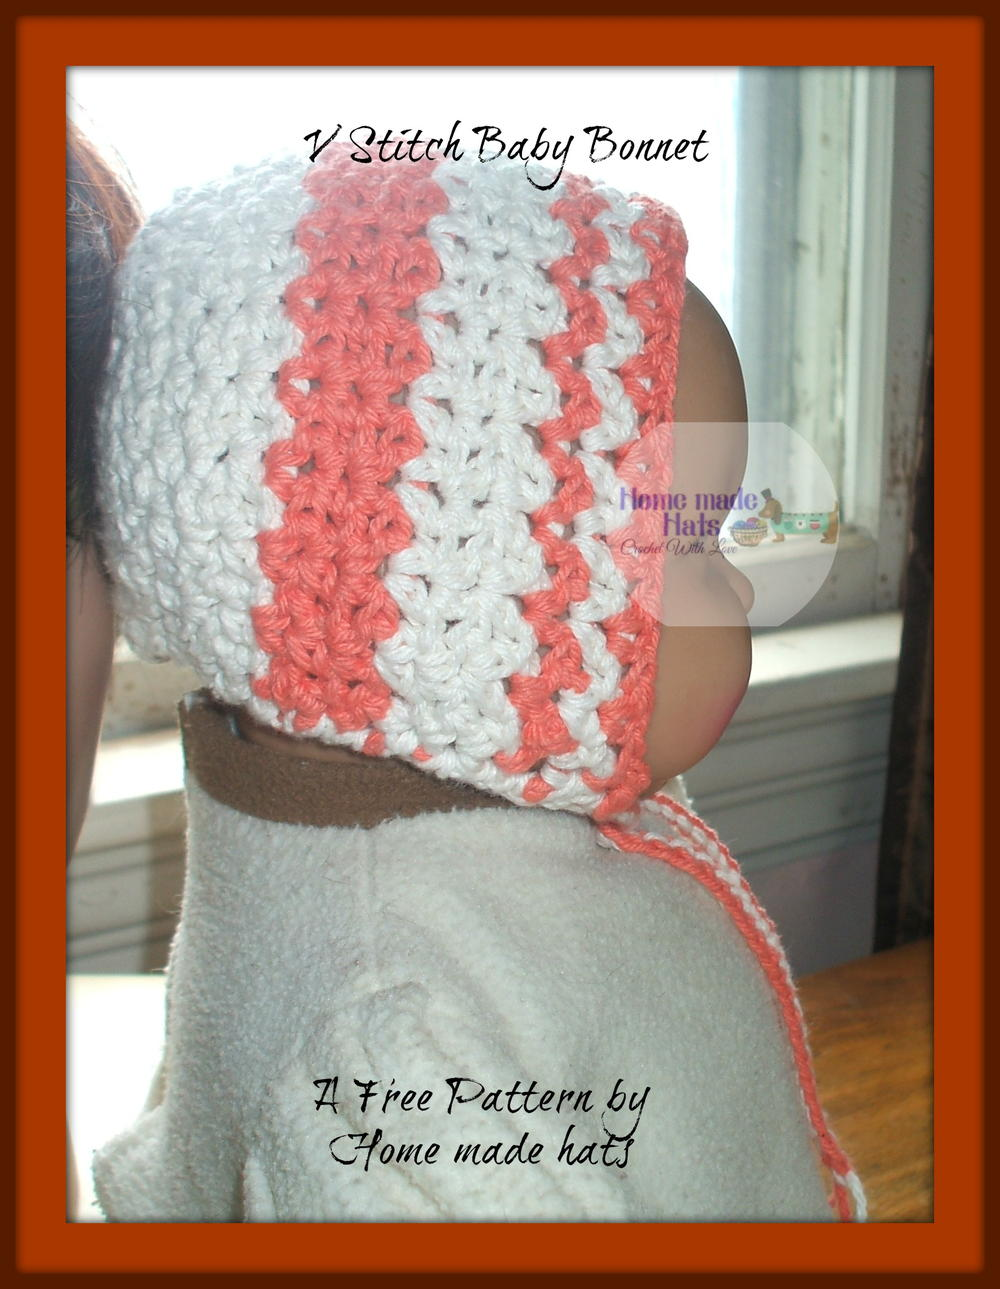 Crochet Stitches V-St : Stitch Crochet Baby Bonnet AllFreeCrochet.com